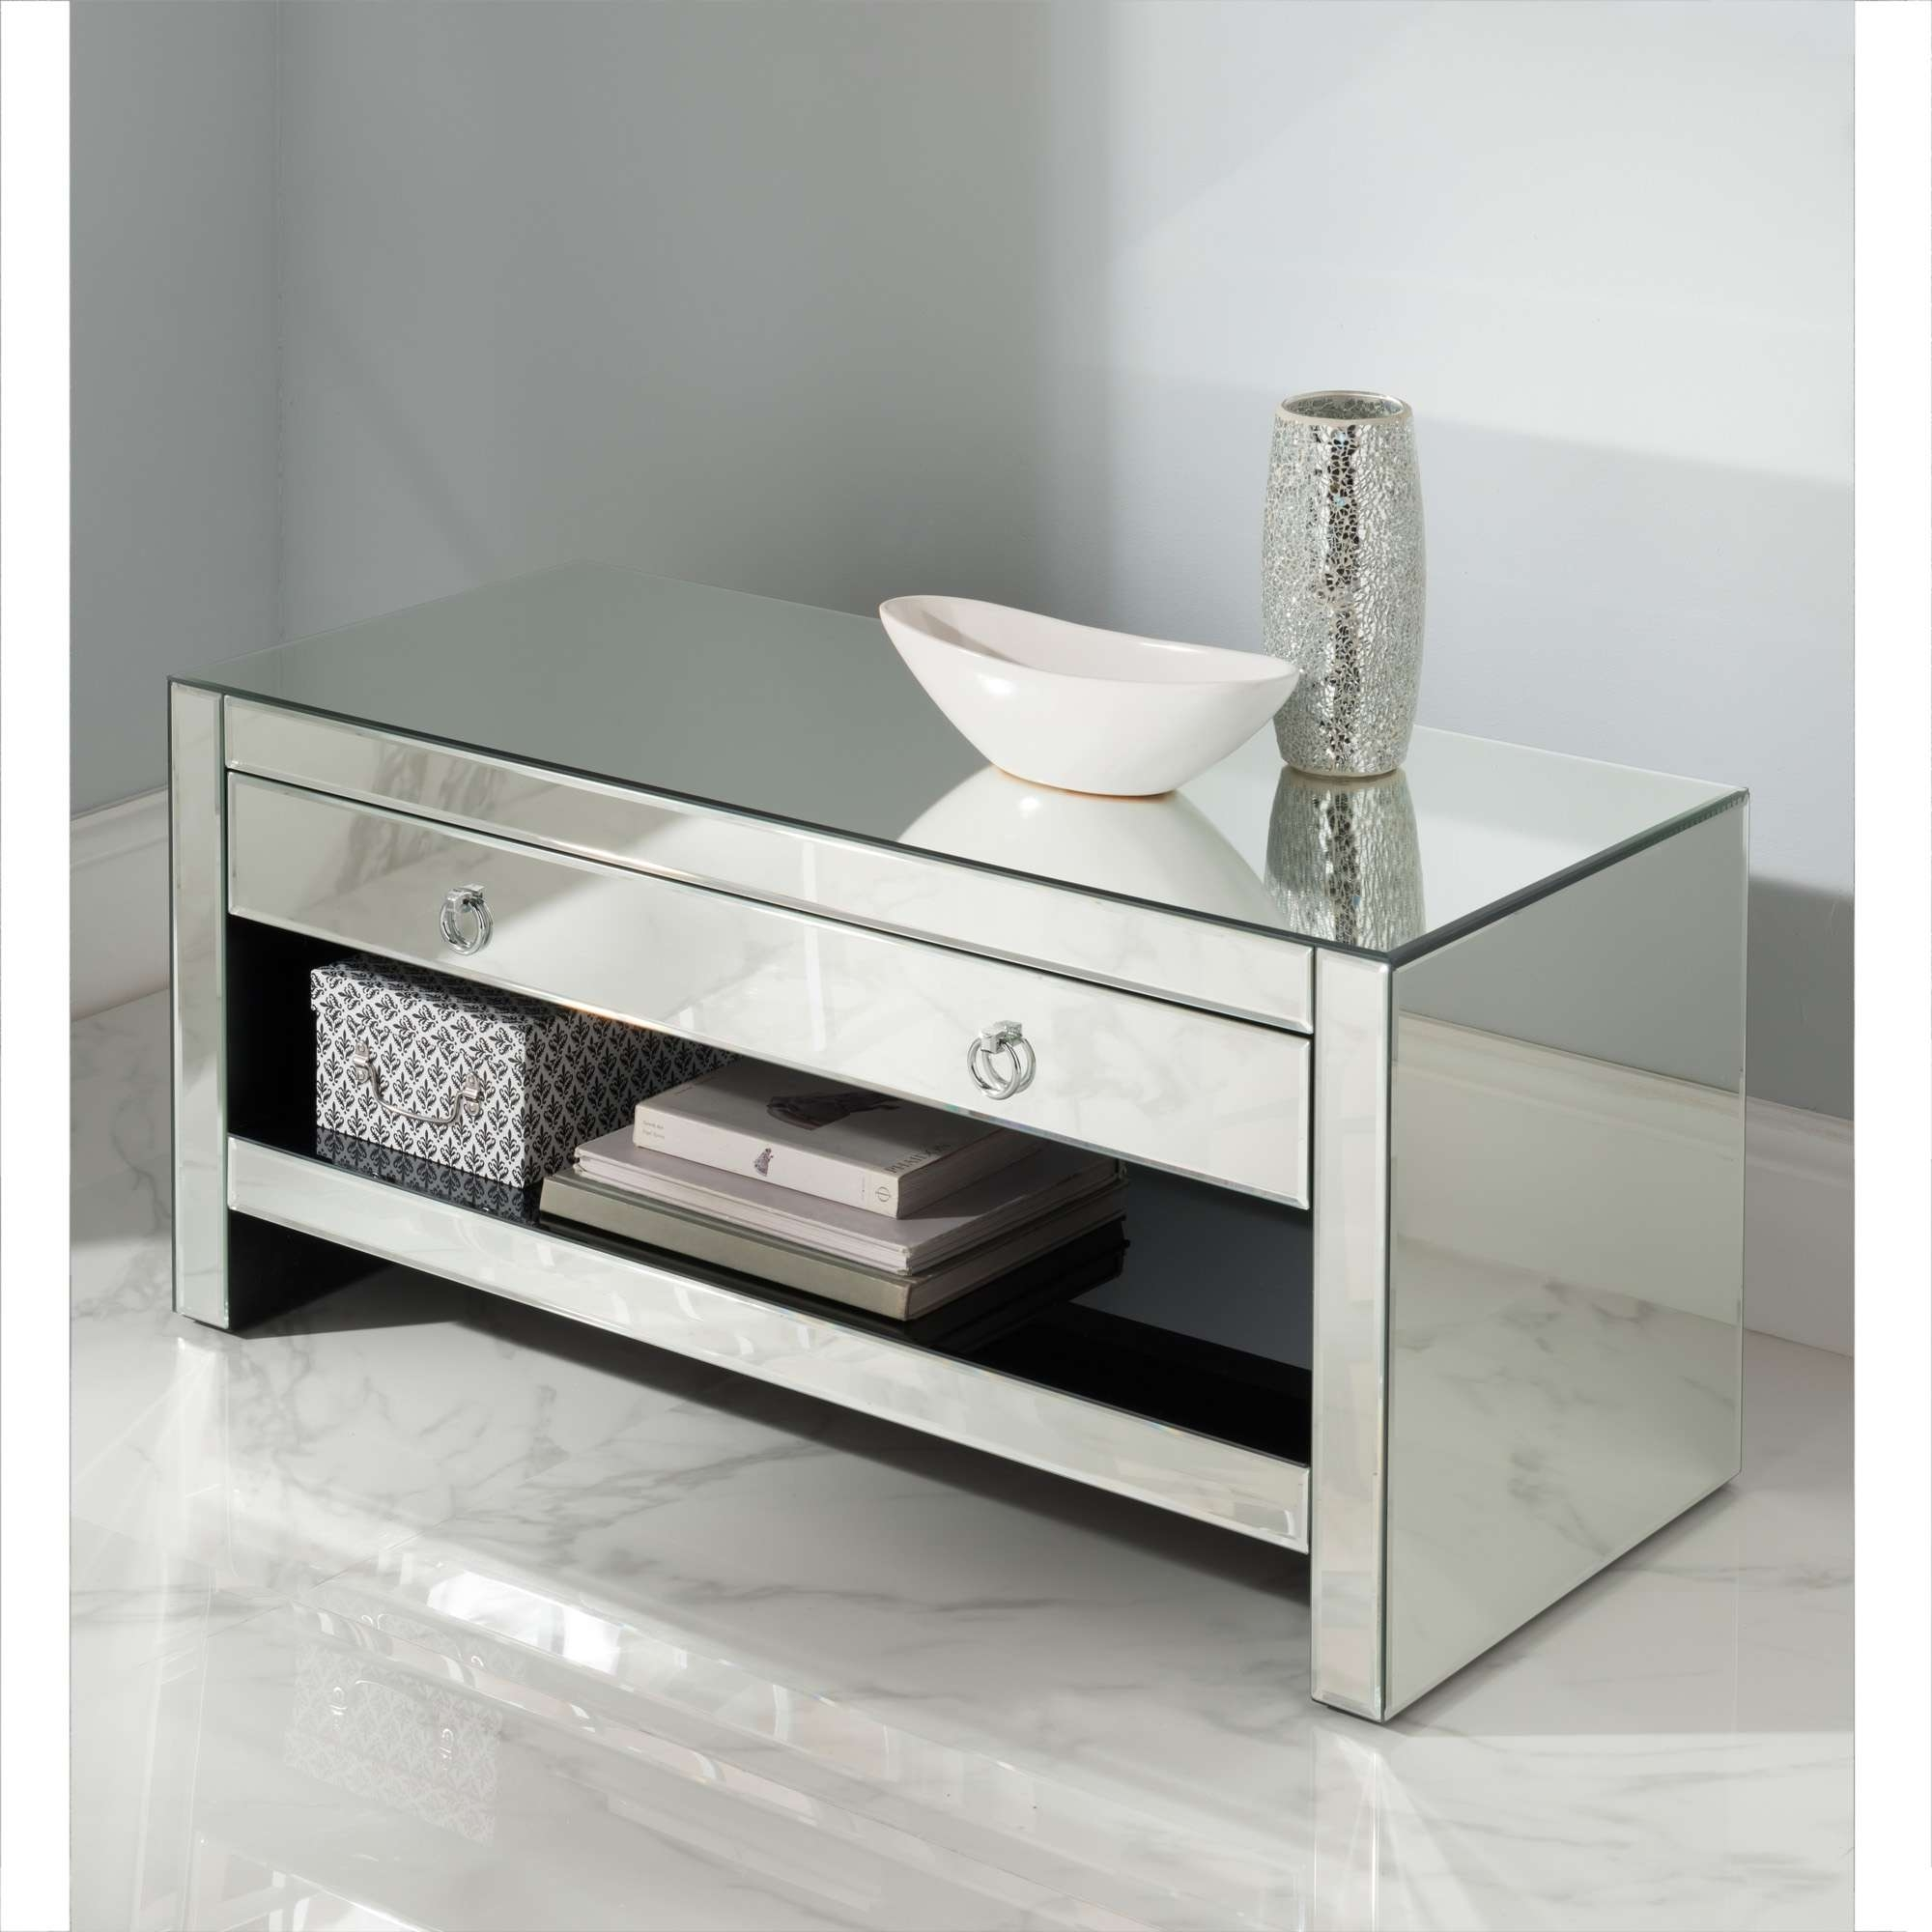 Mirrored Tv Cabinet | Glass Venetian Furniture | Homesdirect365 Pertaining To Mirrored Tv Cabinets Furniture (View 2 of 20)